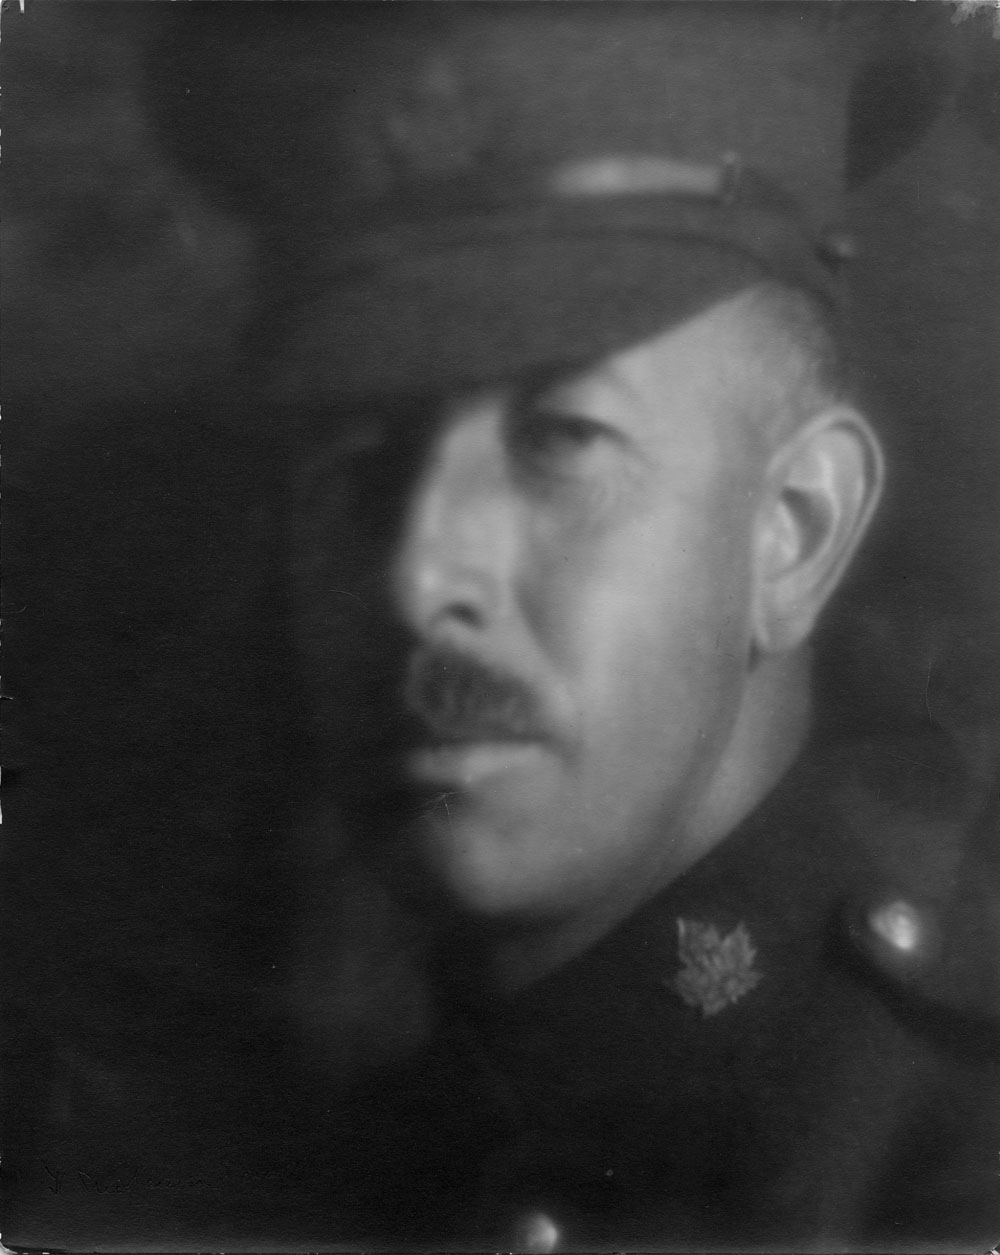 A black-and-white photo of a man in a military uniform.